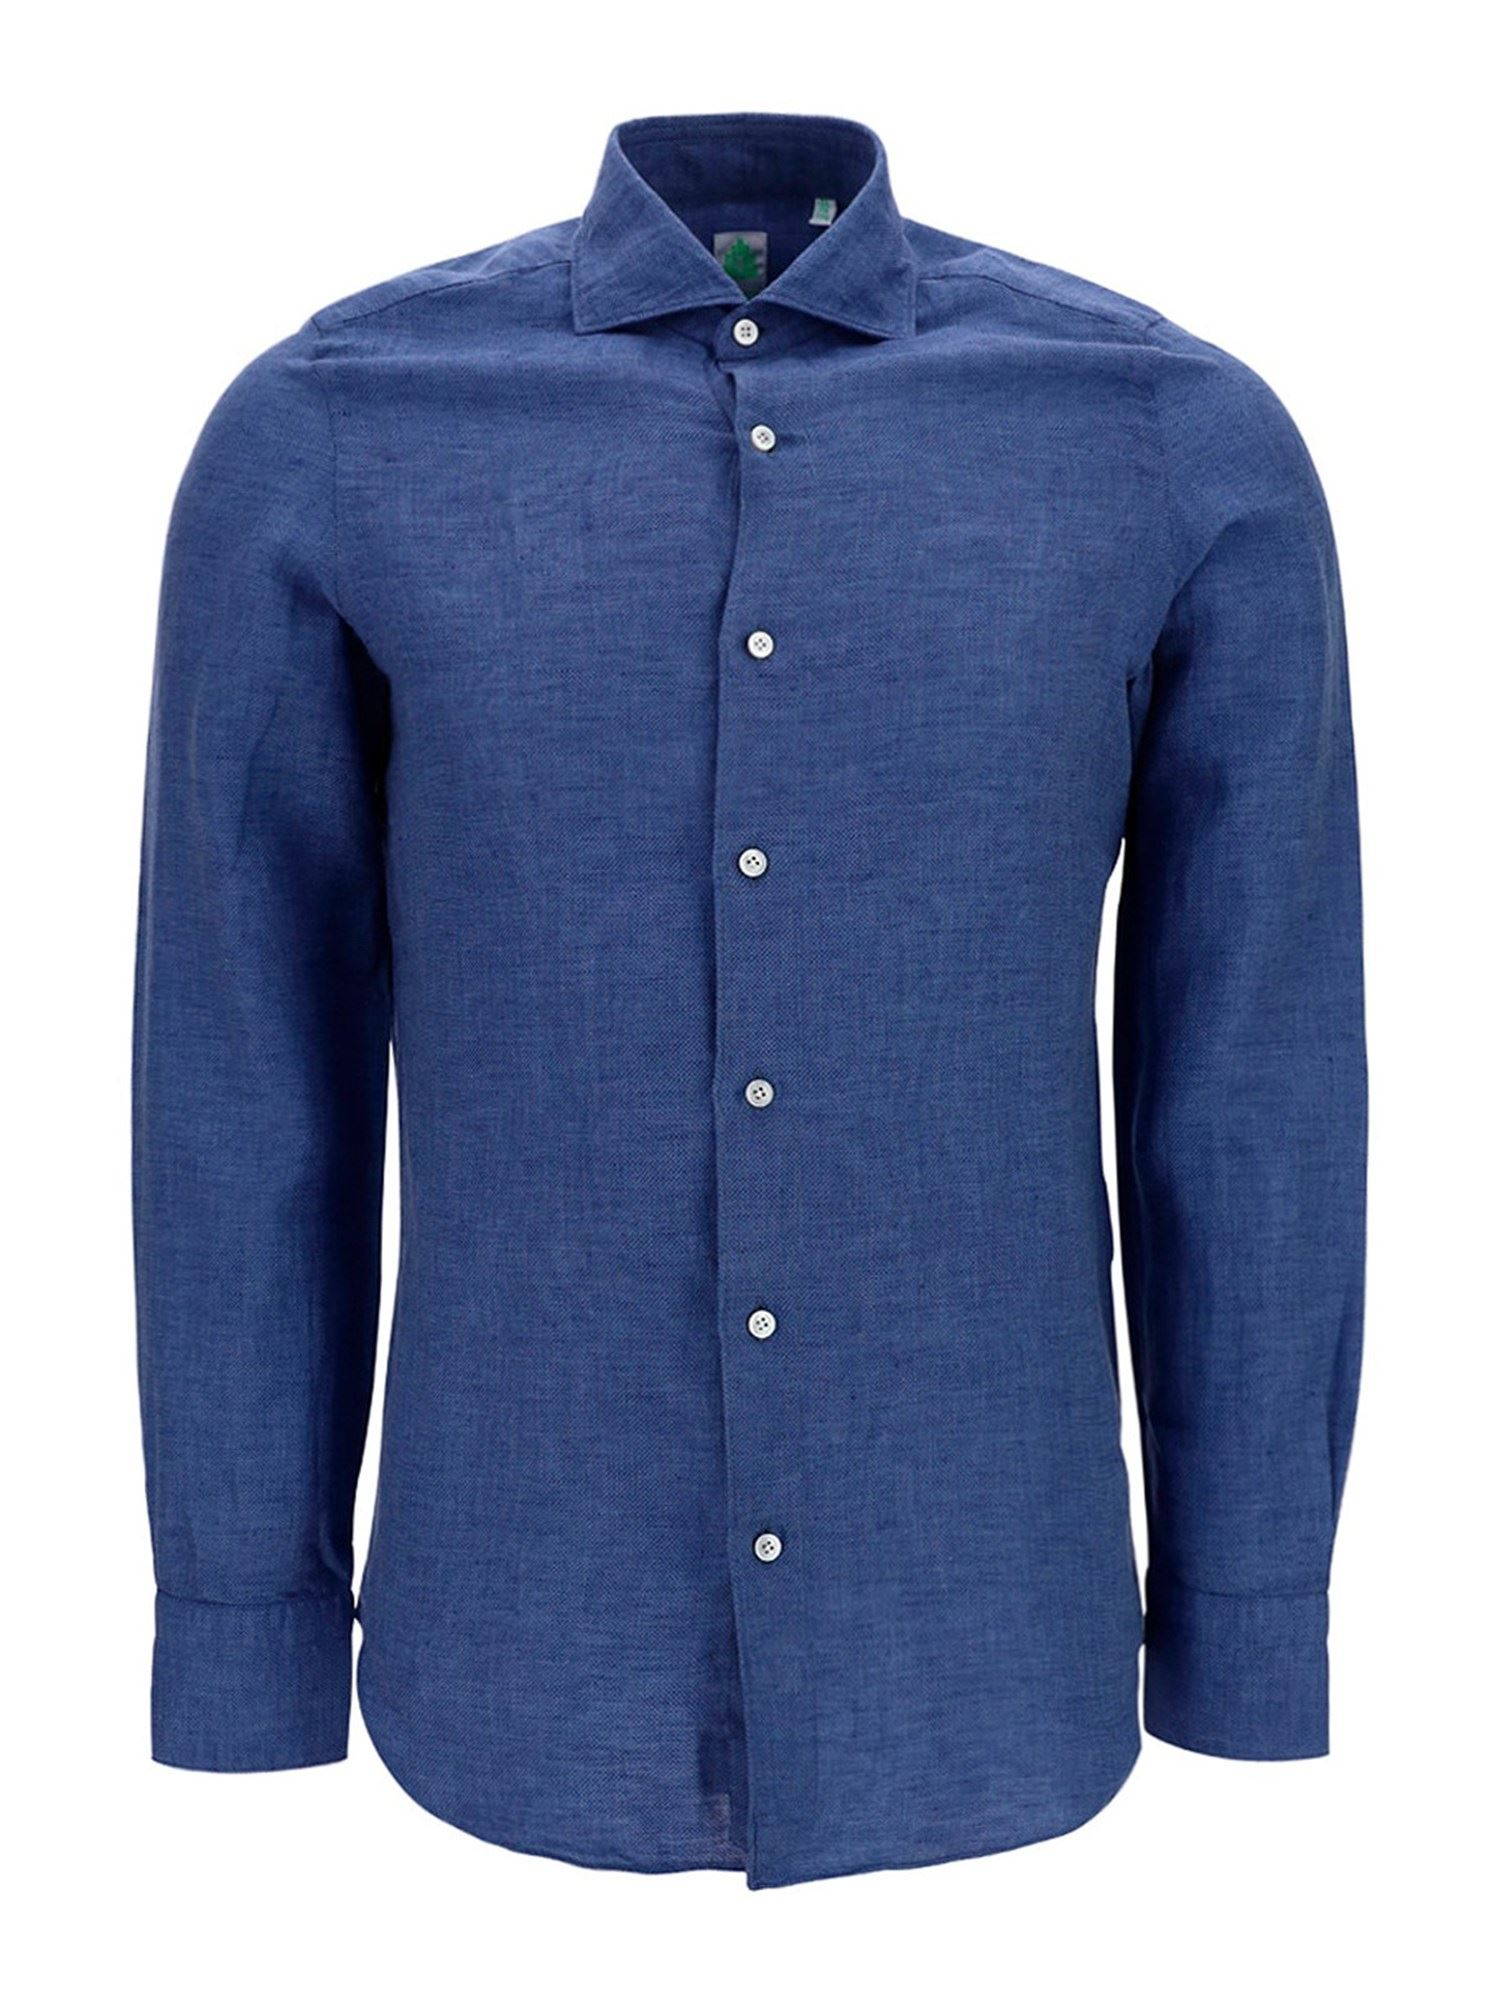 Finamore 1925 Cottons FRENCH COLLAR COTTON SLIM FIT SHIRT IN BLUE